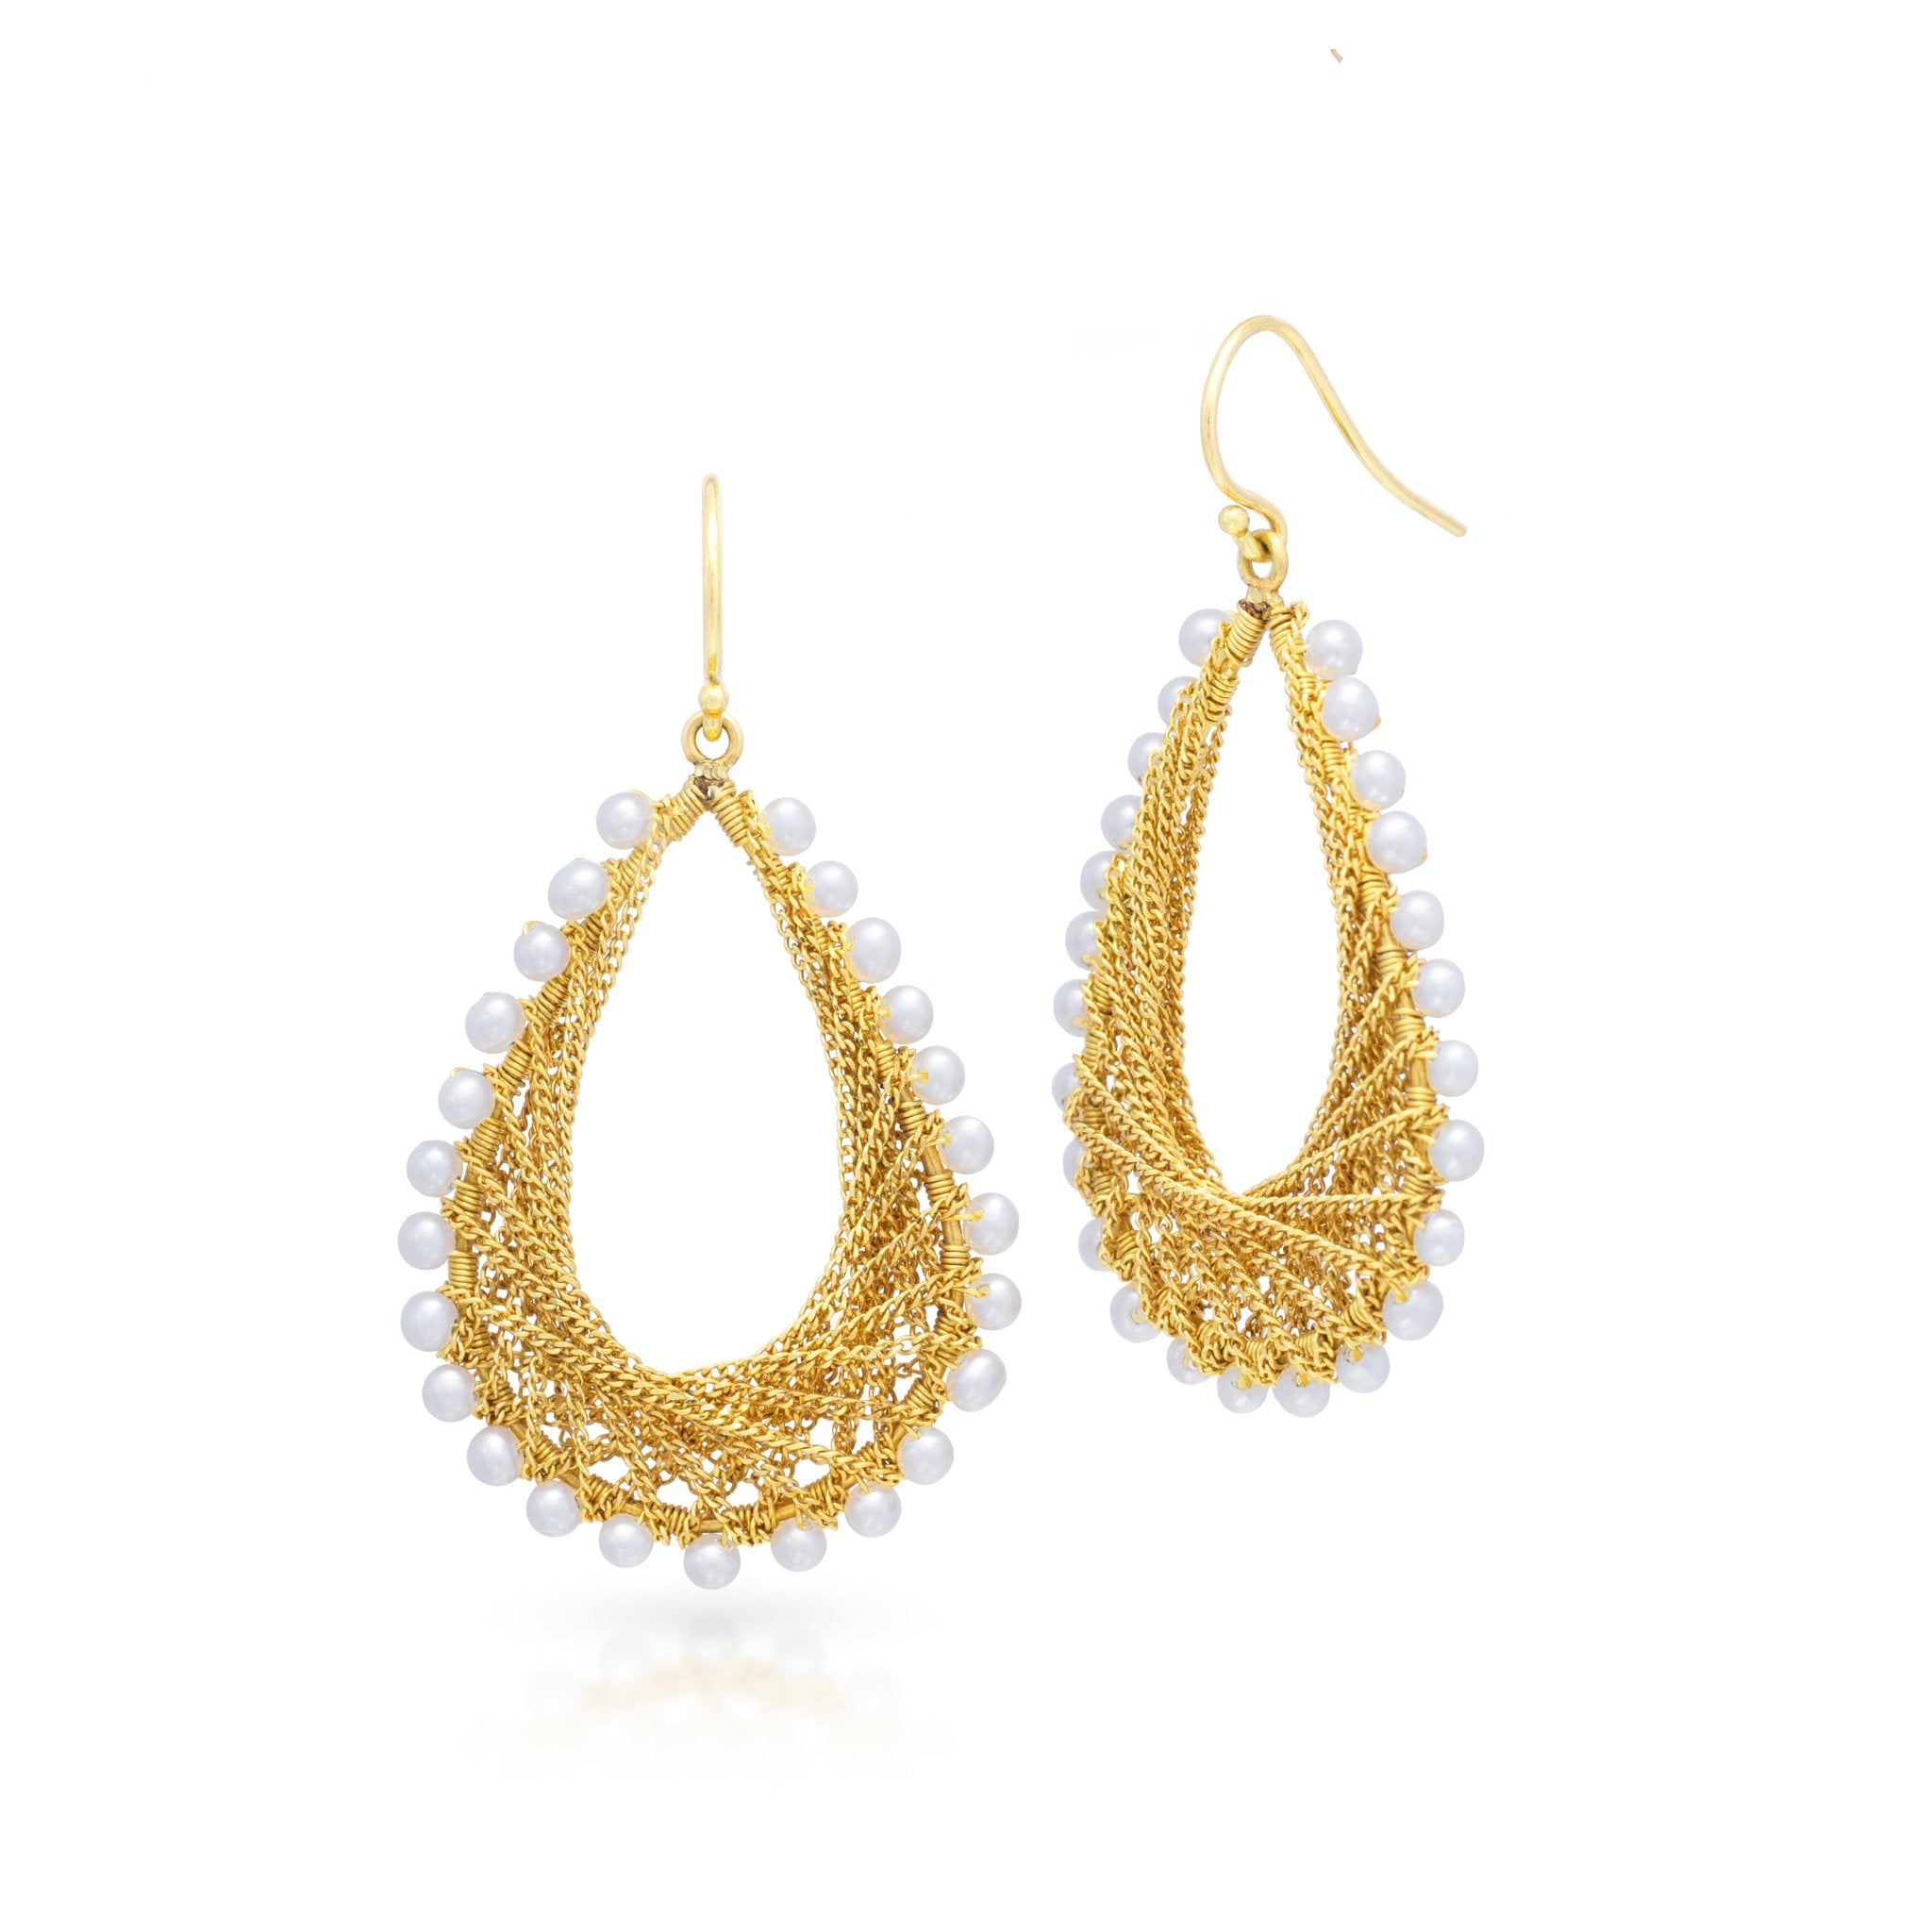 Woven Teardrop Earrings in Pearl